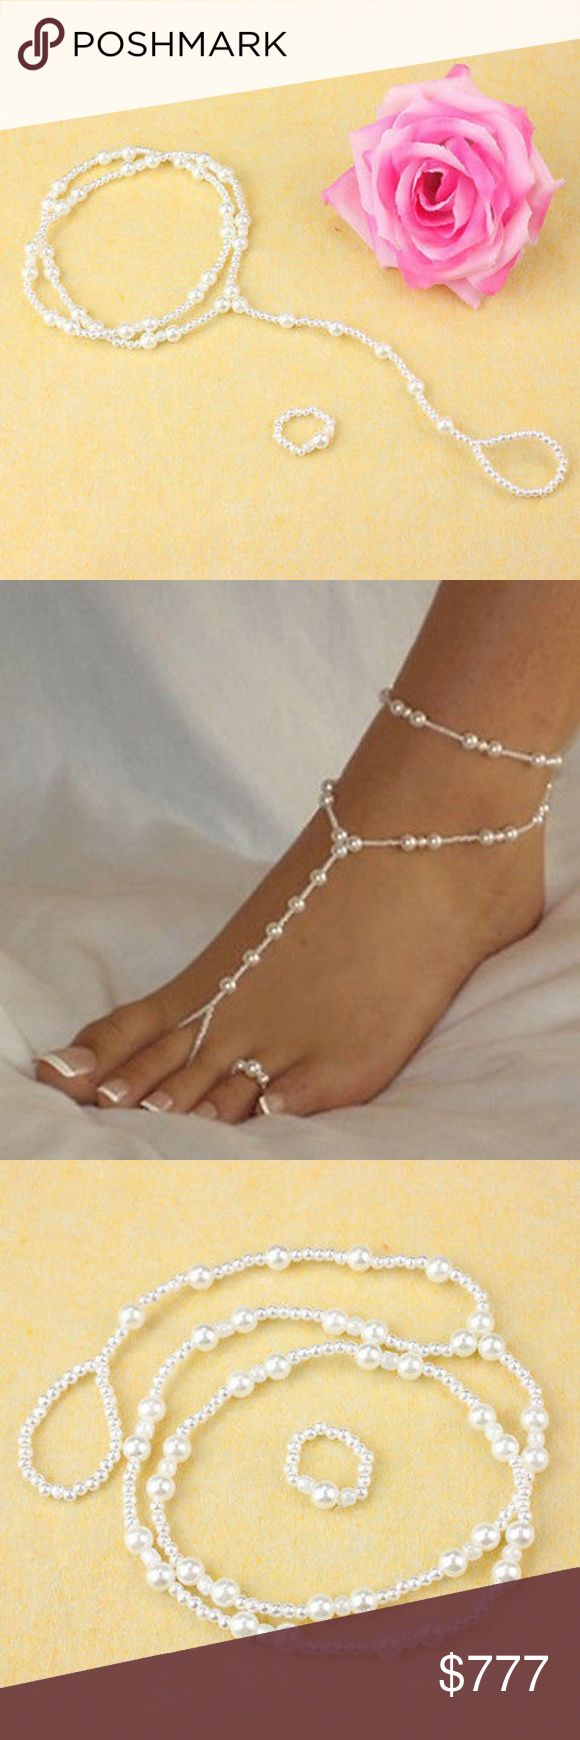 Beautiful Pearl Stretchy Bare Foot Sandal Anklet Delicate, Elegant and beautiful. This barefoot sandal can be worn with or without shoes. Perfect for weddings, proms, parties, or anytime you want to add a bit of glamour. Stretchy and is meant to wrap around ankle. Stretchy matching toe ring included! Gulperi4 Jewelry